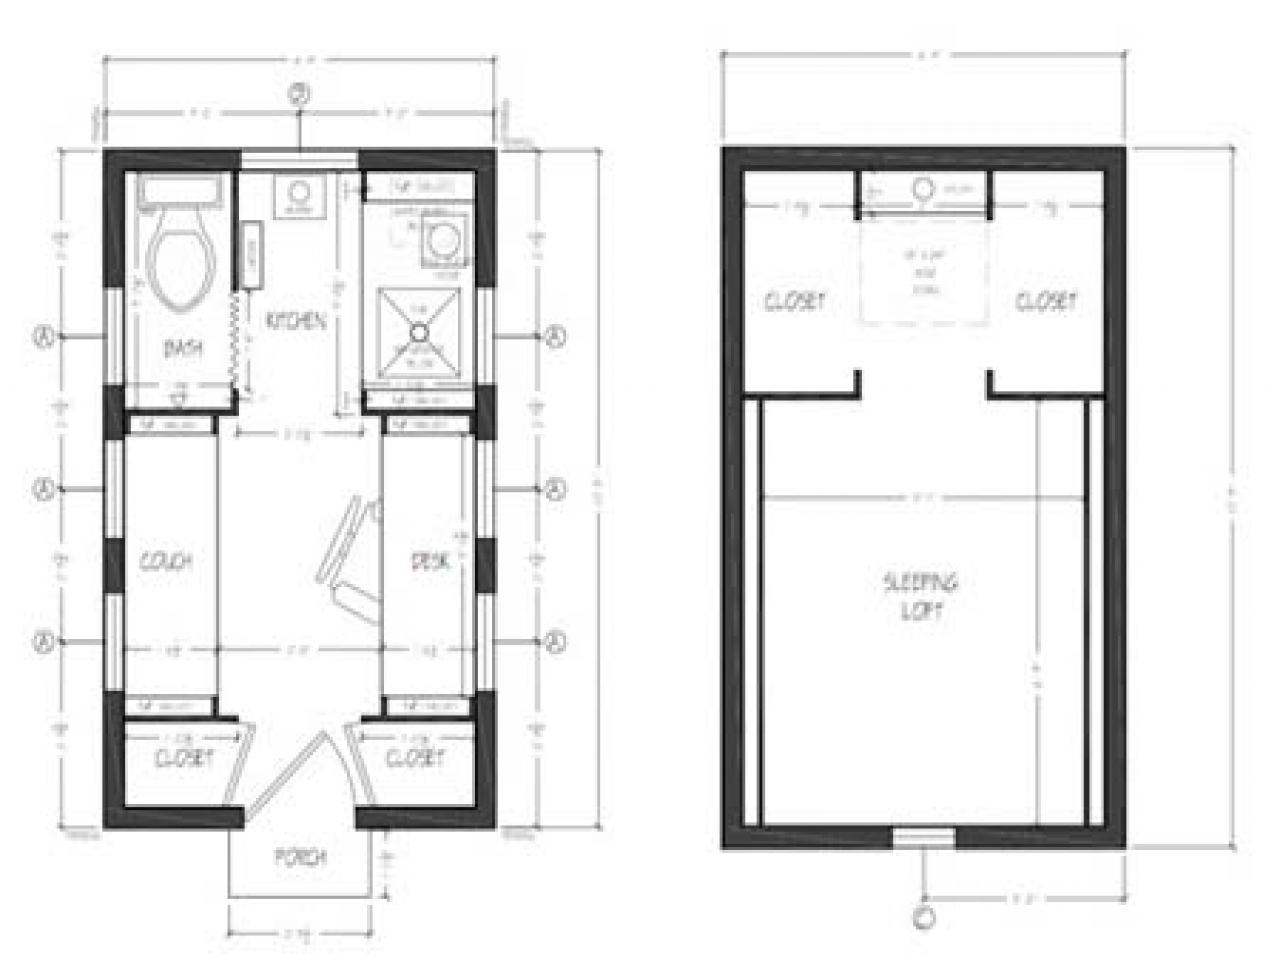 Tiny Home Floorplans Tiny Victorian House Plans Tiny House Floor Plans Tiny